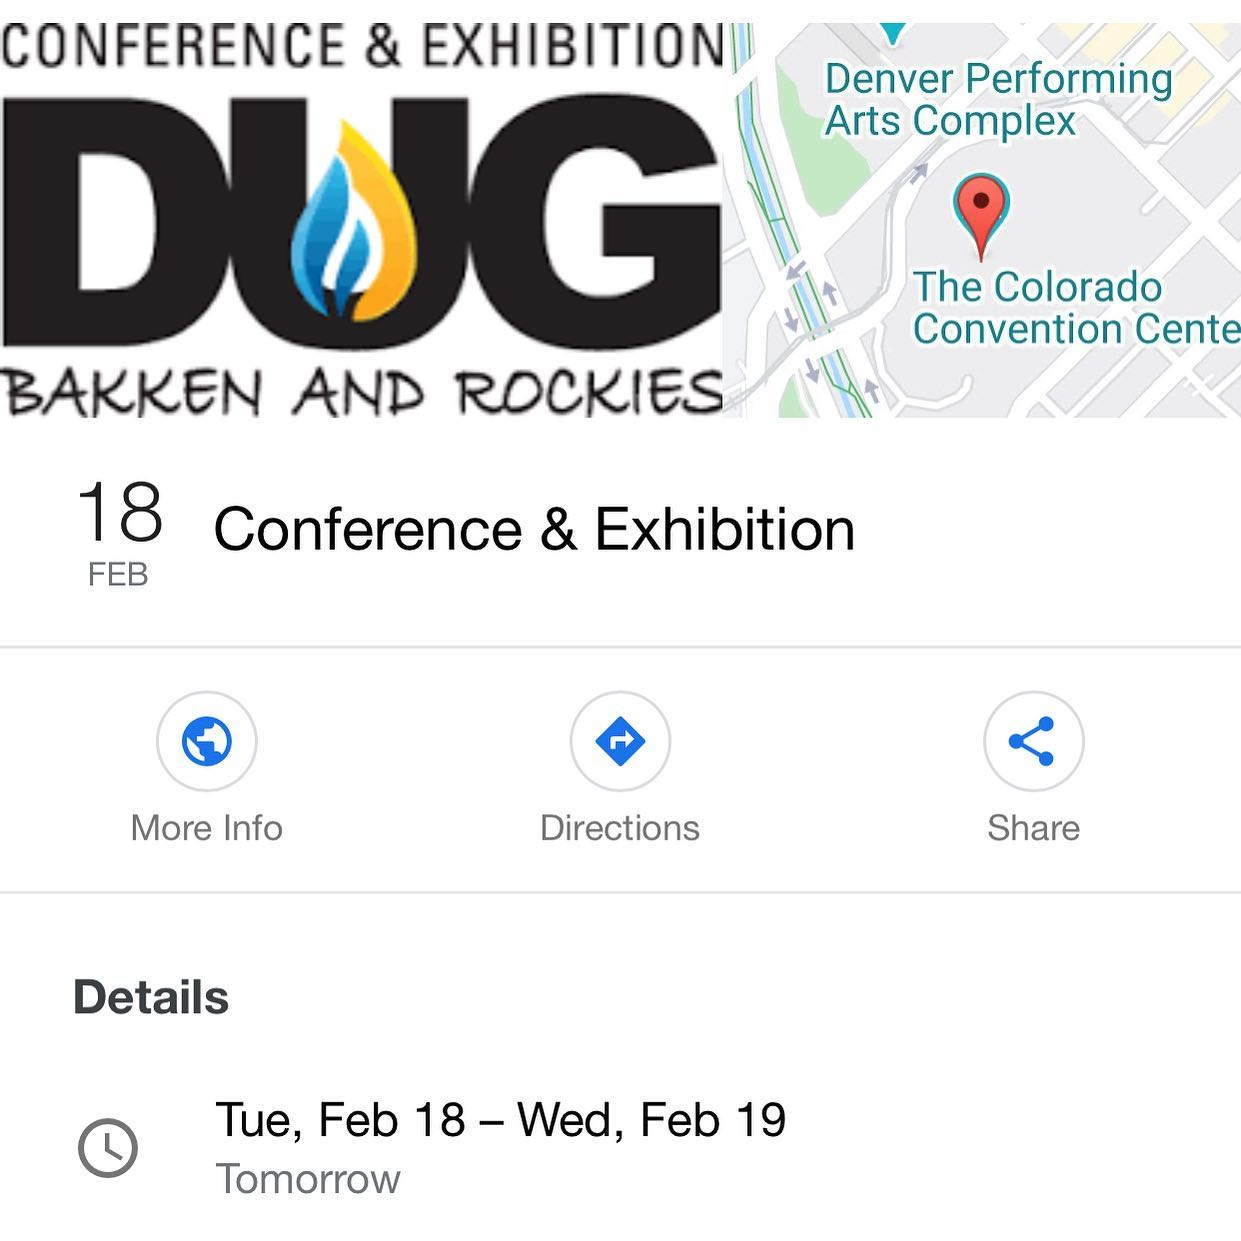 Our Lead Evaluator/Instructor will be attending the DUG Bakker